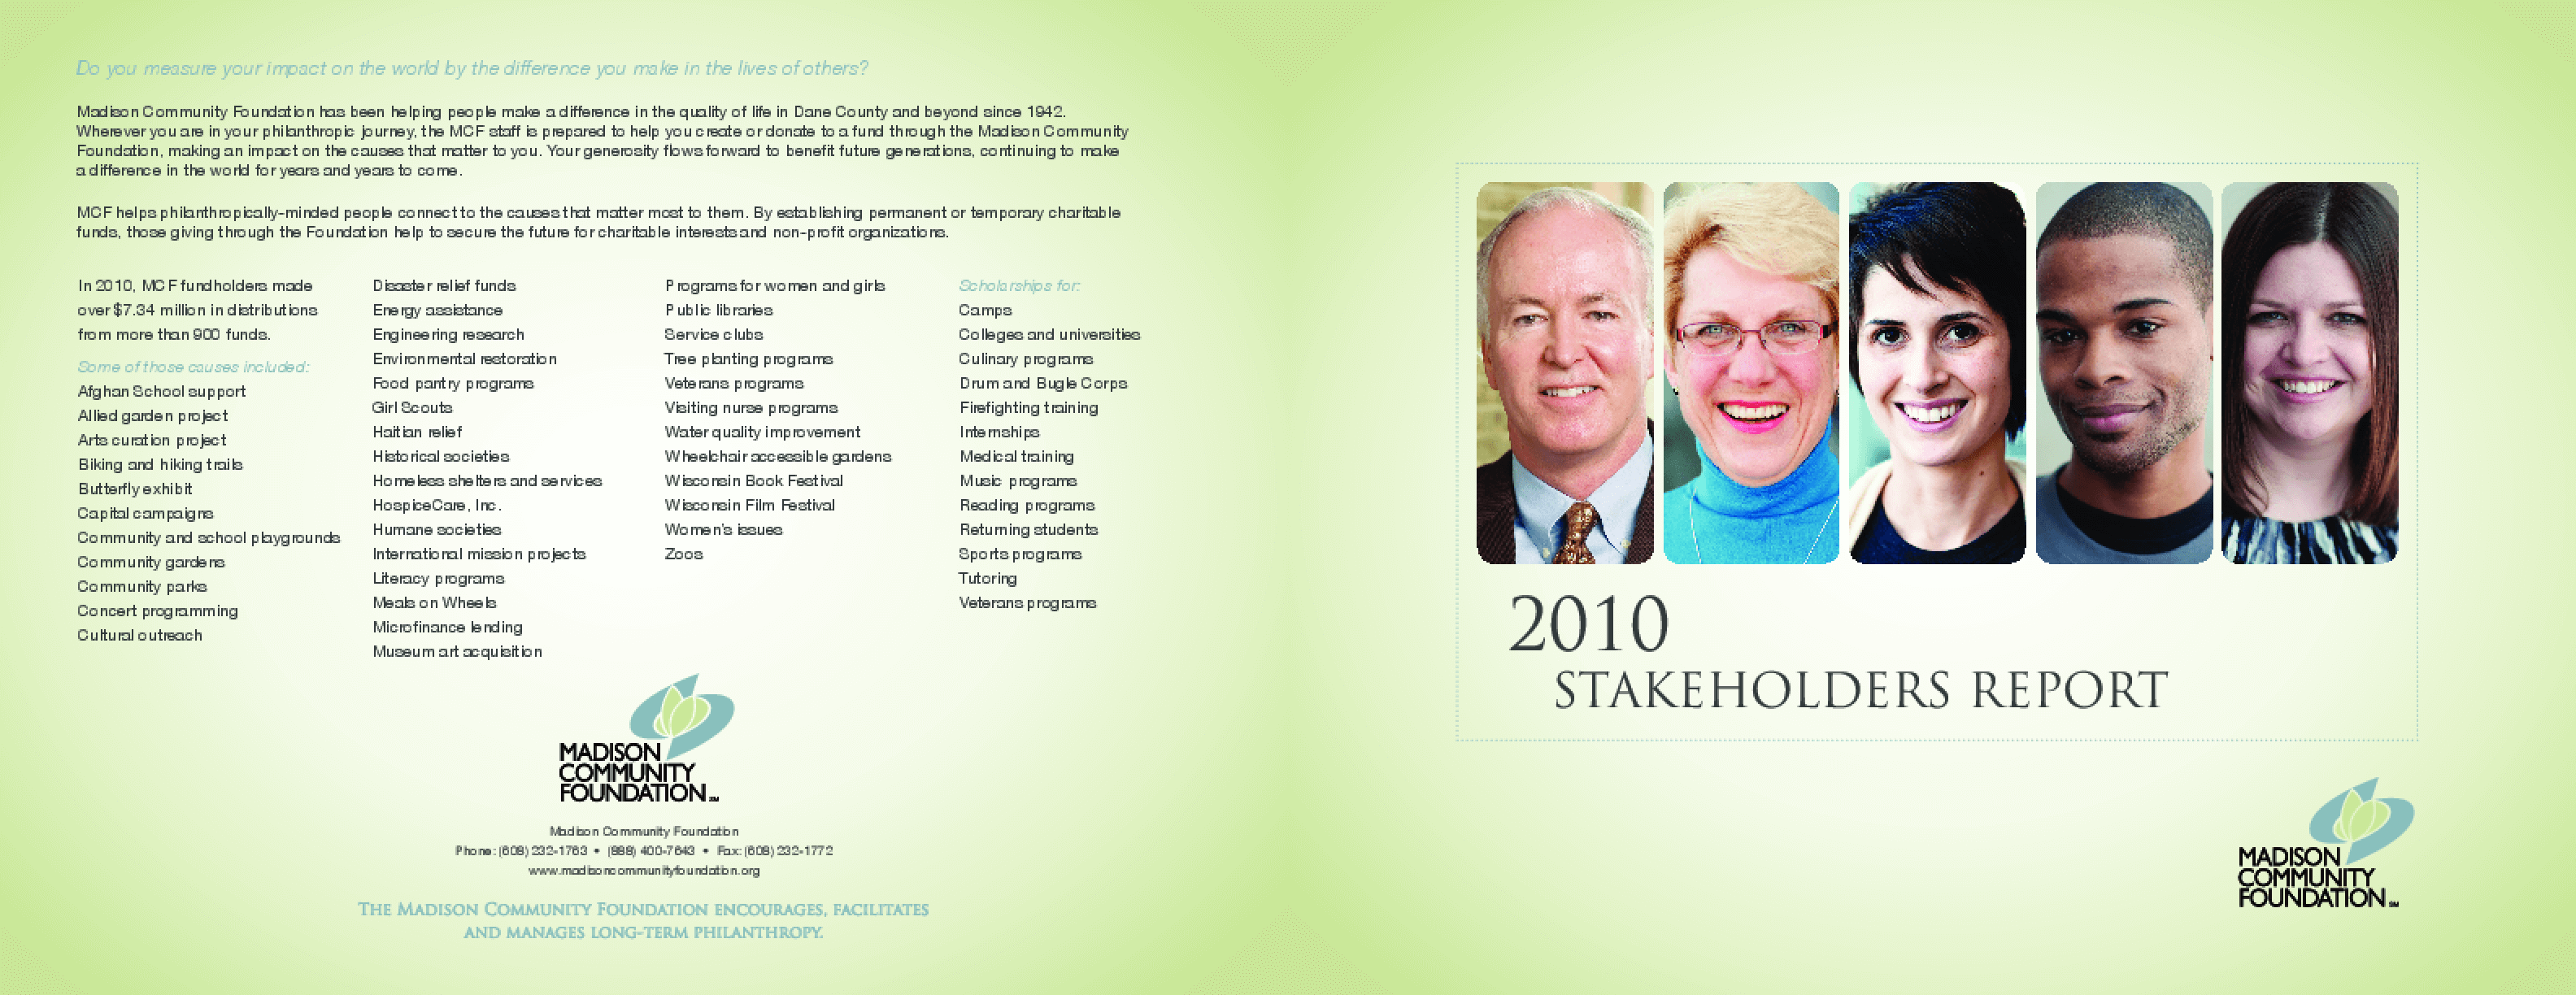 Madison Community Foundation, 2010 Annual Report